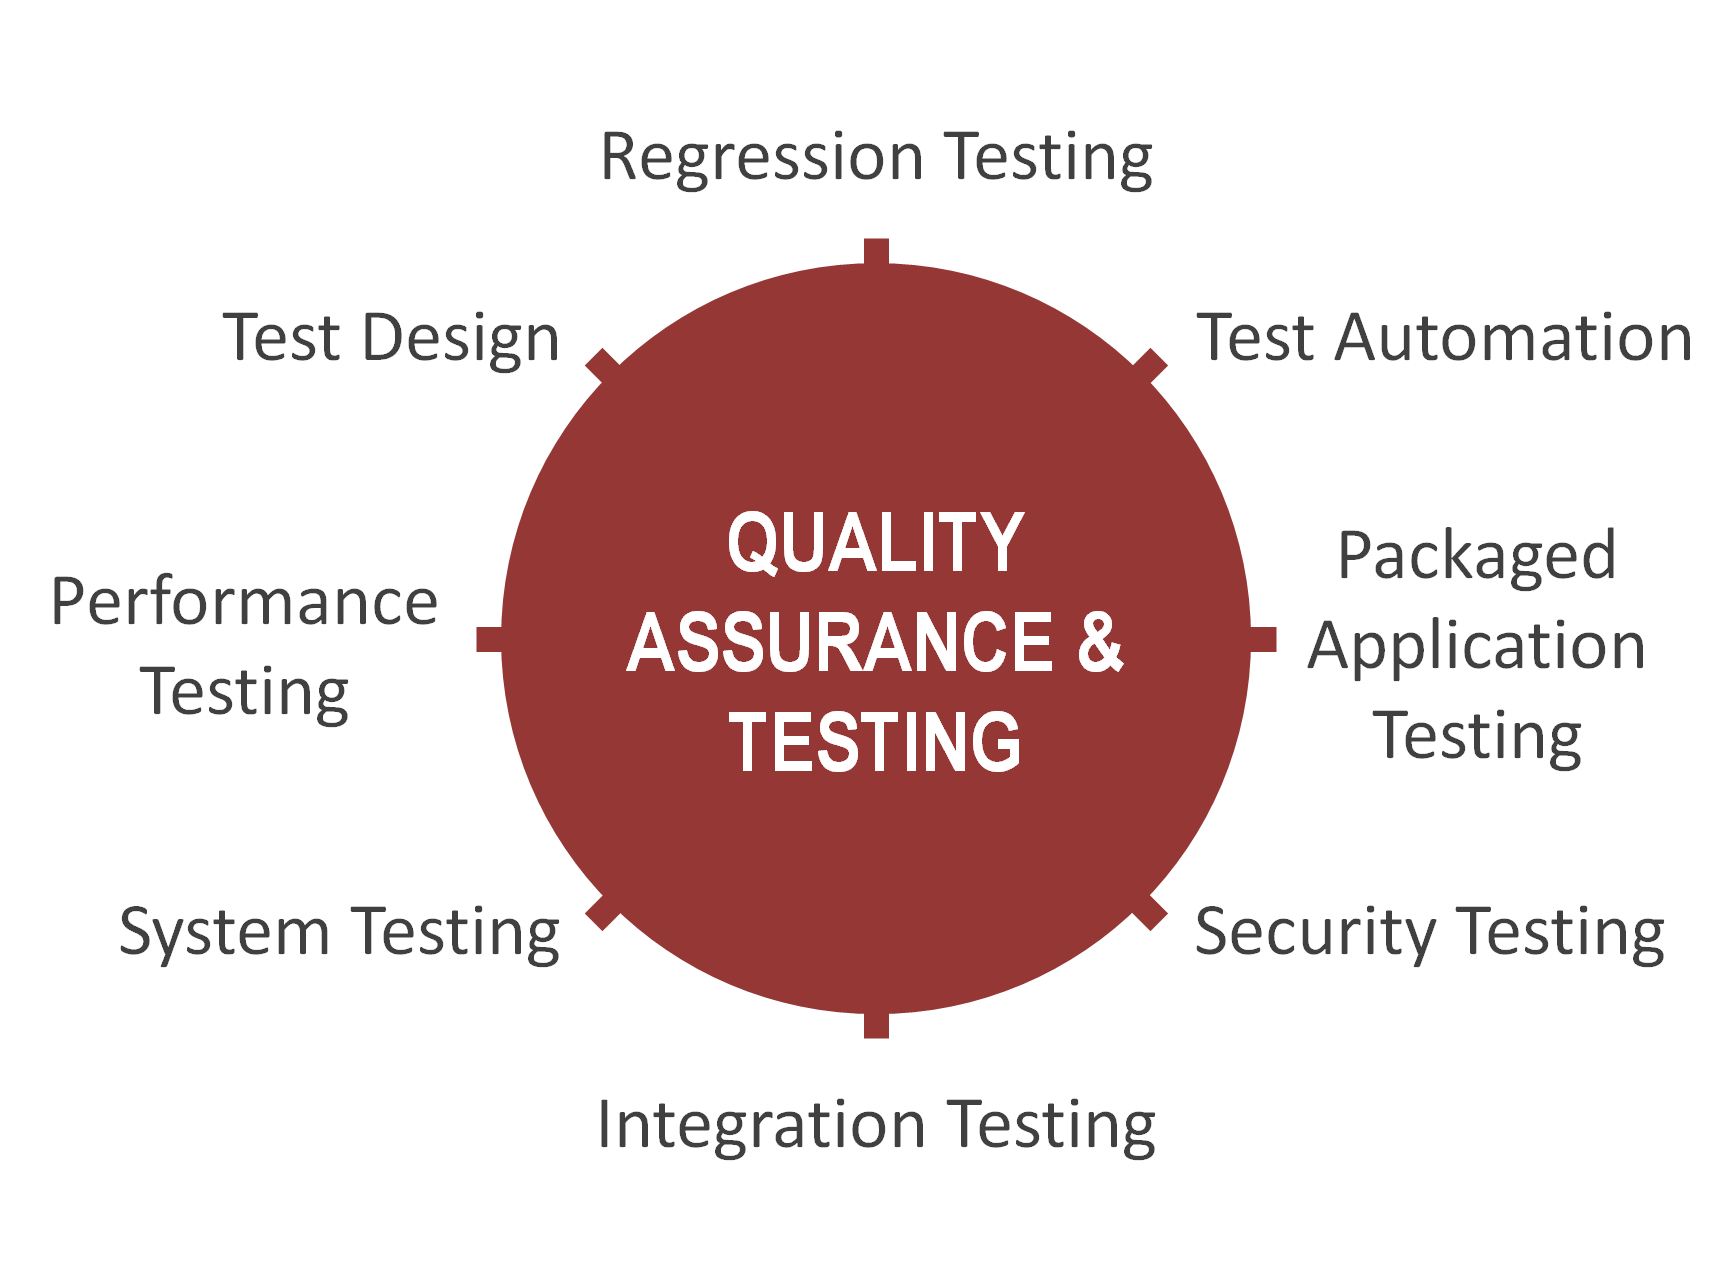 What is quality assurance and testing?